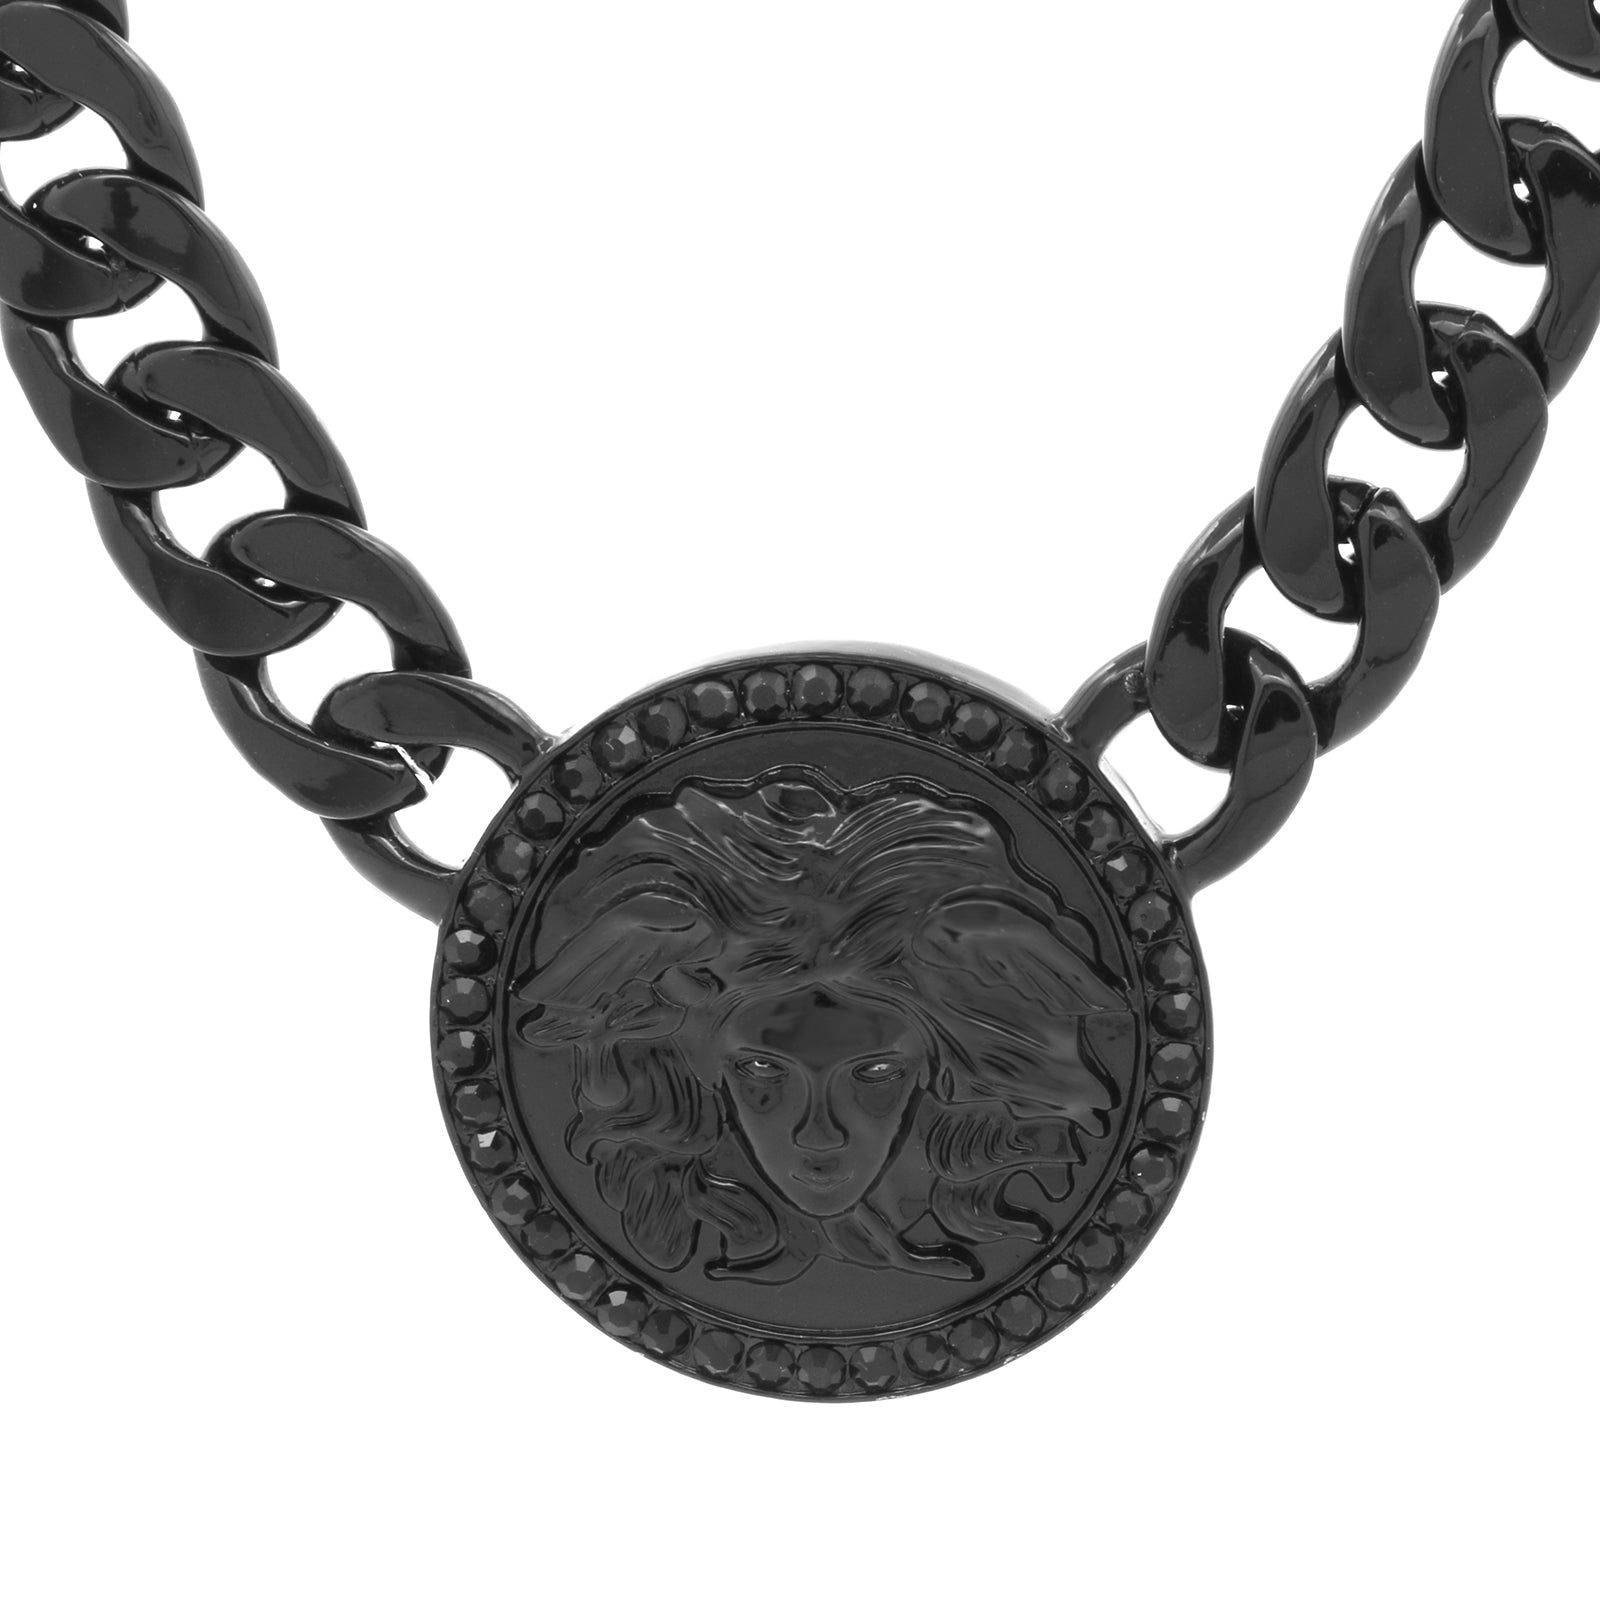 MEDUSA PENDANT MEDALLION CUBAN Black